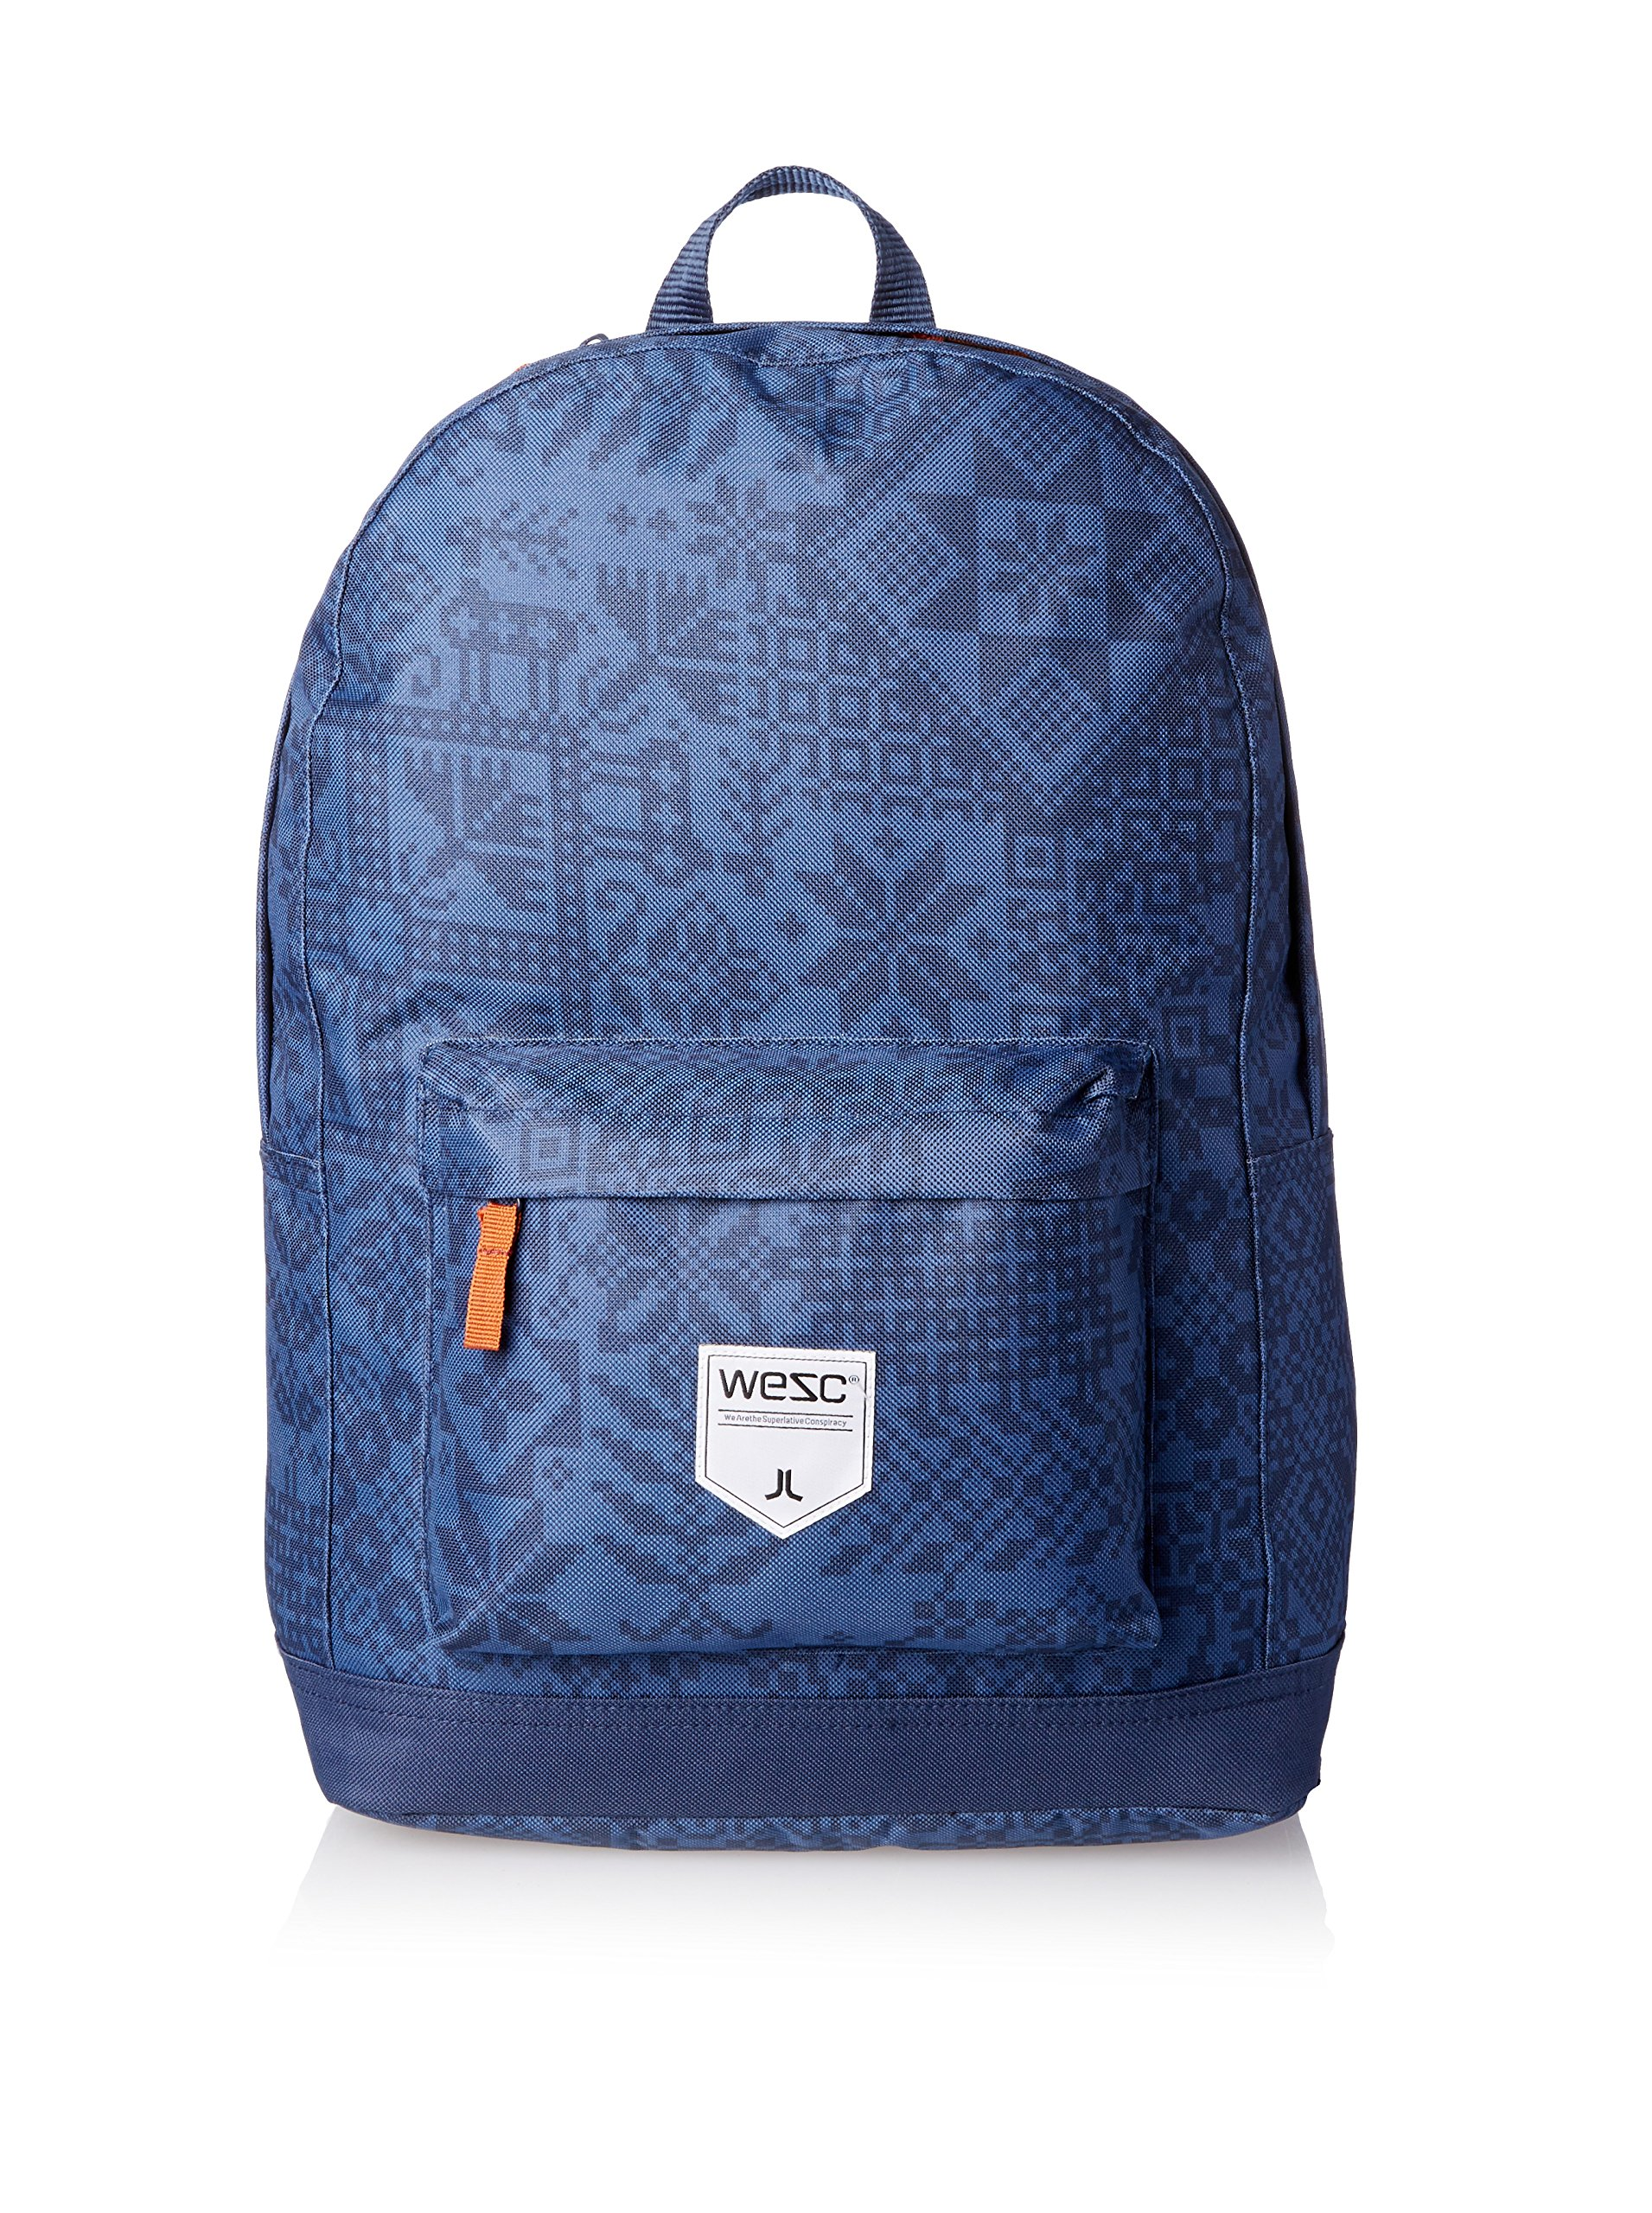 WeSC Men's Chaz Pattern Backpack, Blue Iris